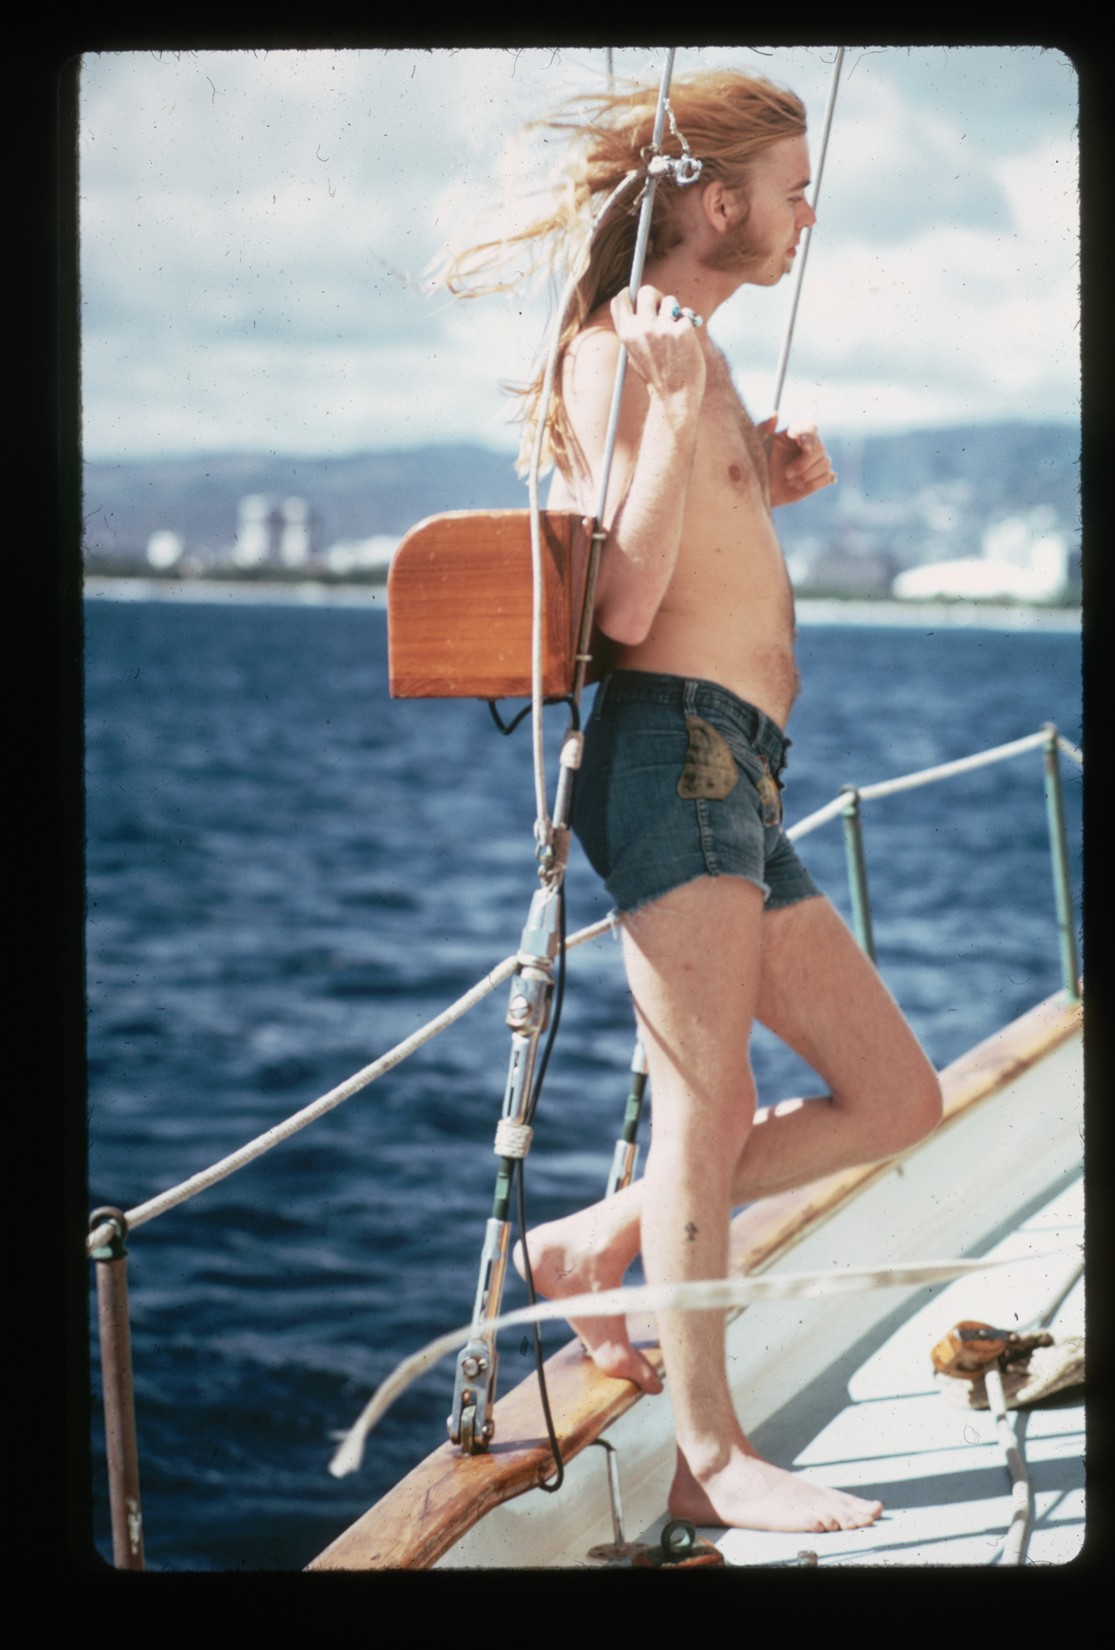 A shirtless Gregg Allman poses while leaning against the ropes on a boat in 1974.